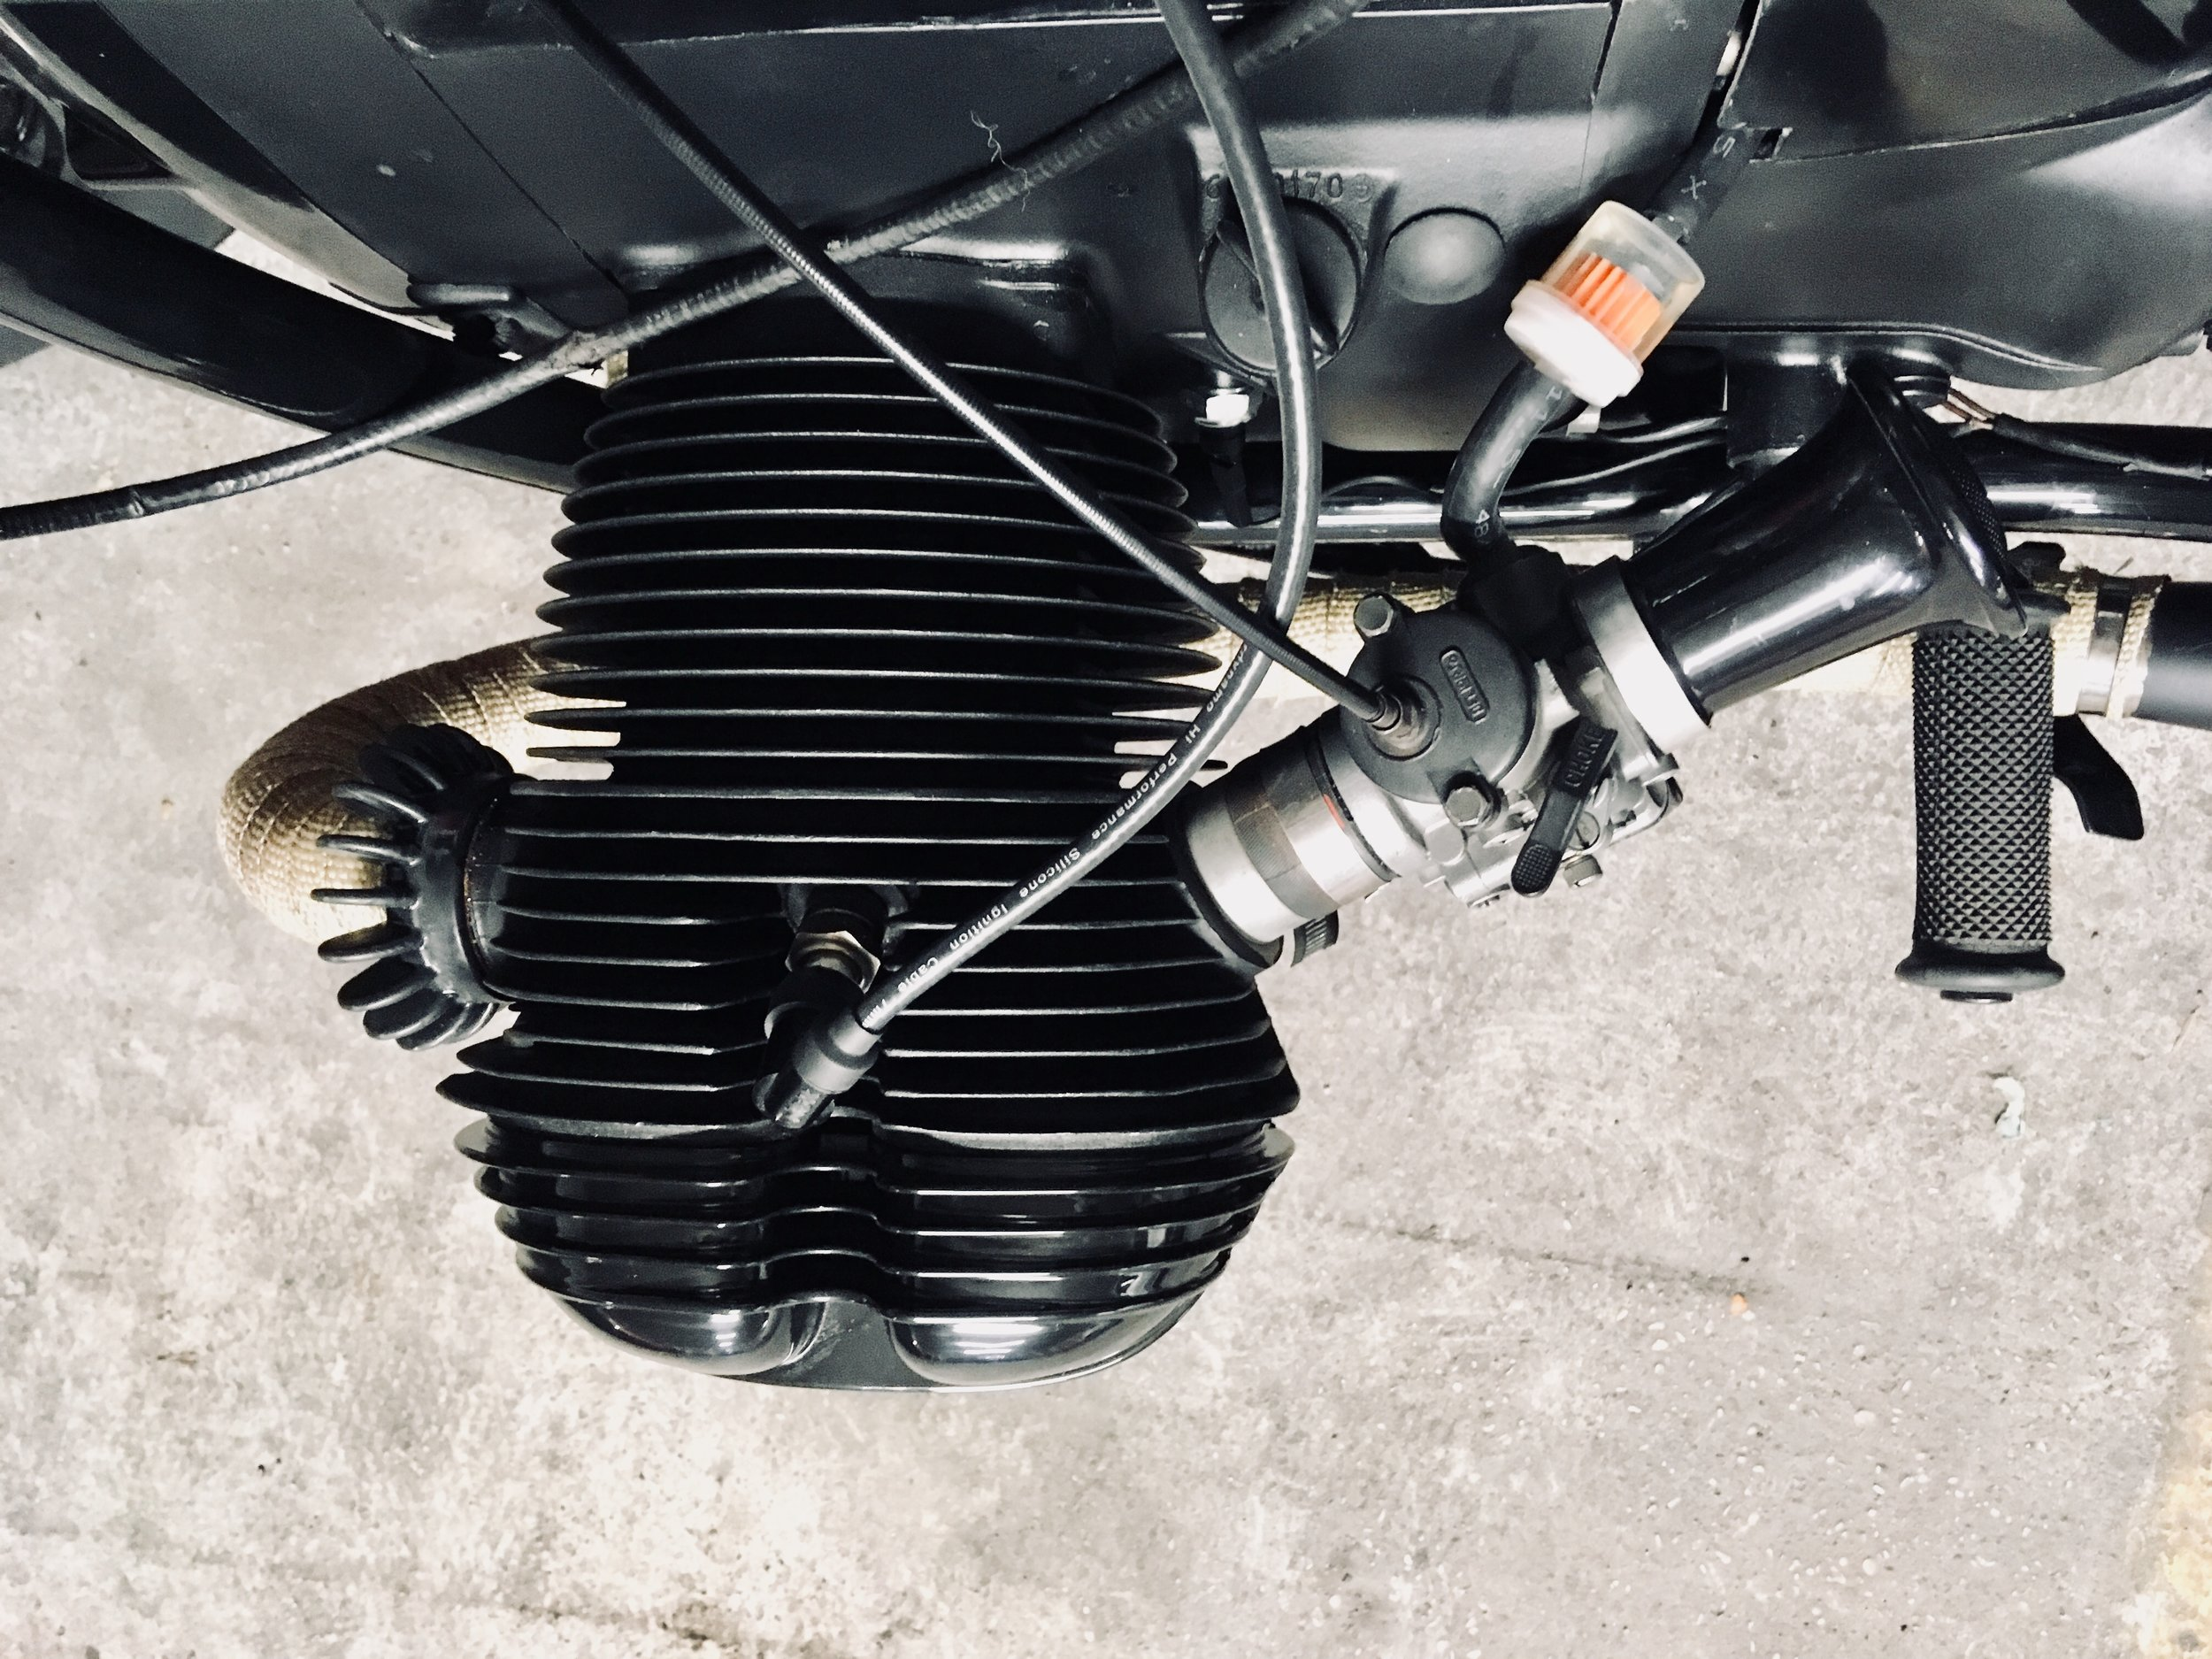 - Engine fully rebuilt (pistons, rings, valves, gaskets, ignition + charging system);  - engine covers shiny black powder coated;  - engine high temperature mat black painted.